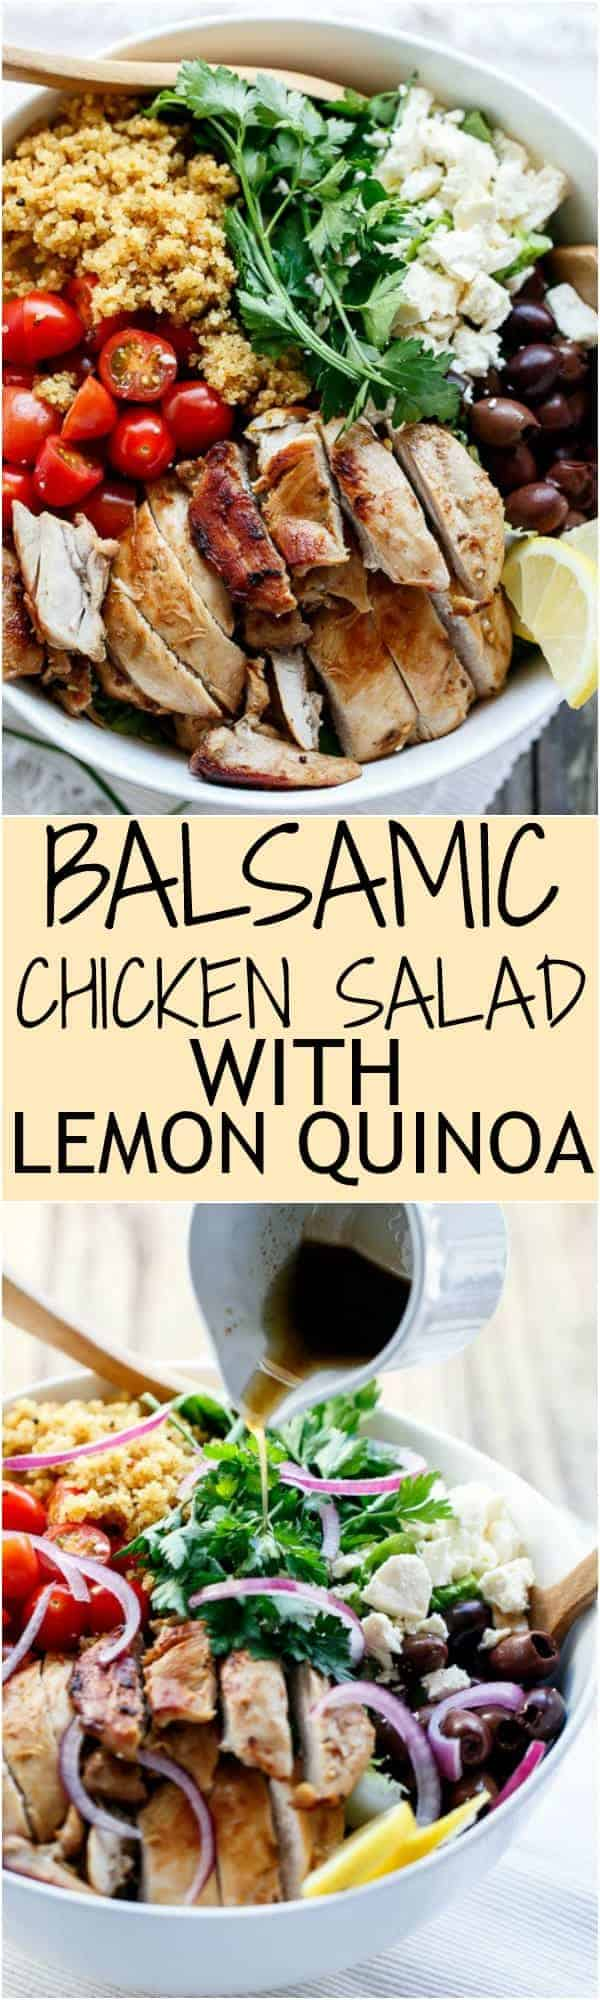 Balsamic Chicken Salad with Lemon Quinoa Collage | http://cafedelites.com